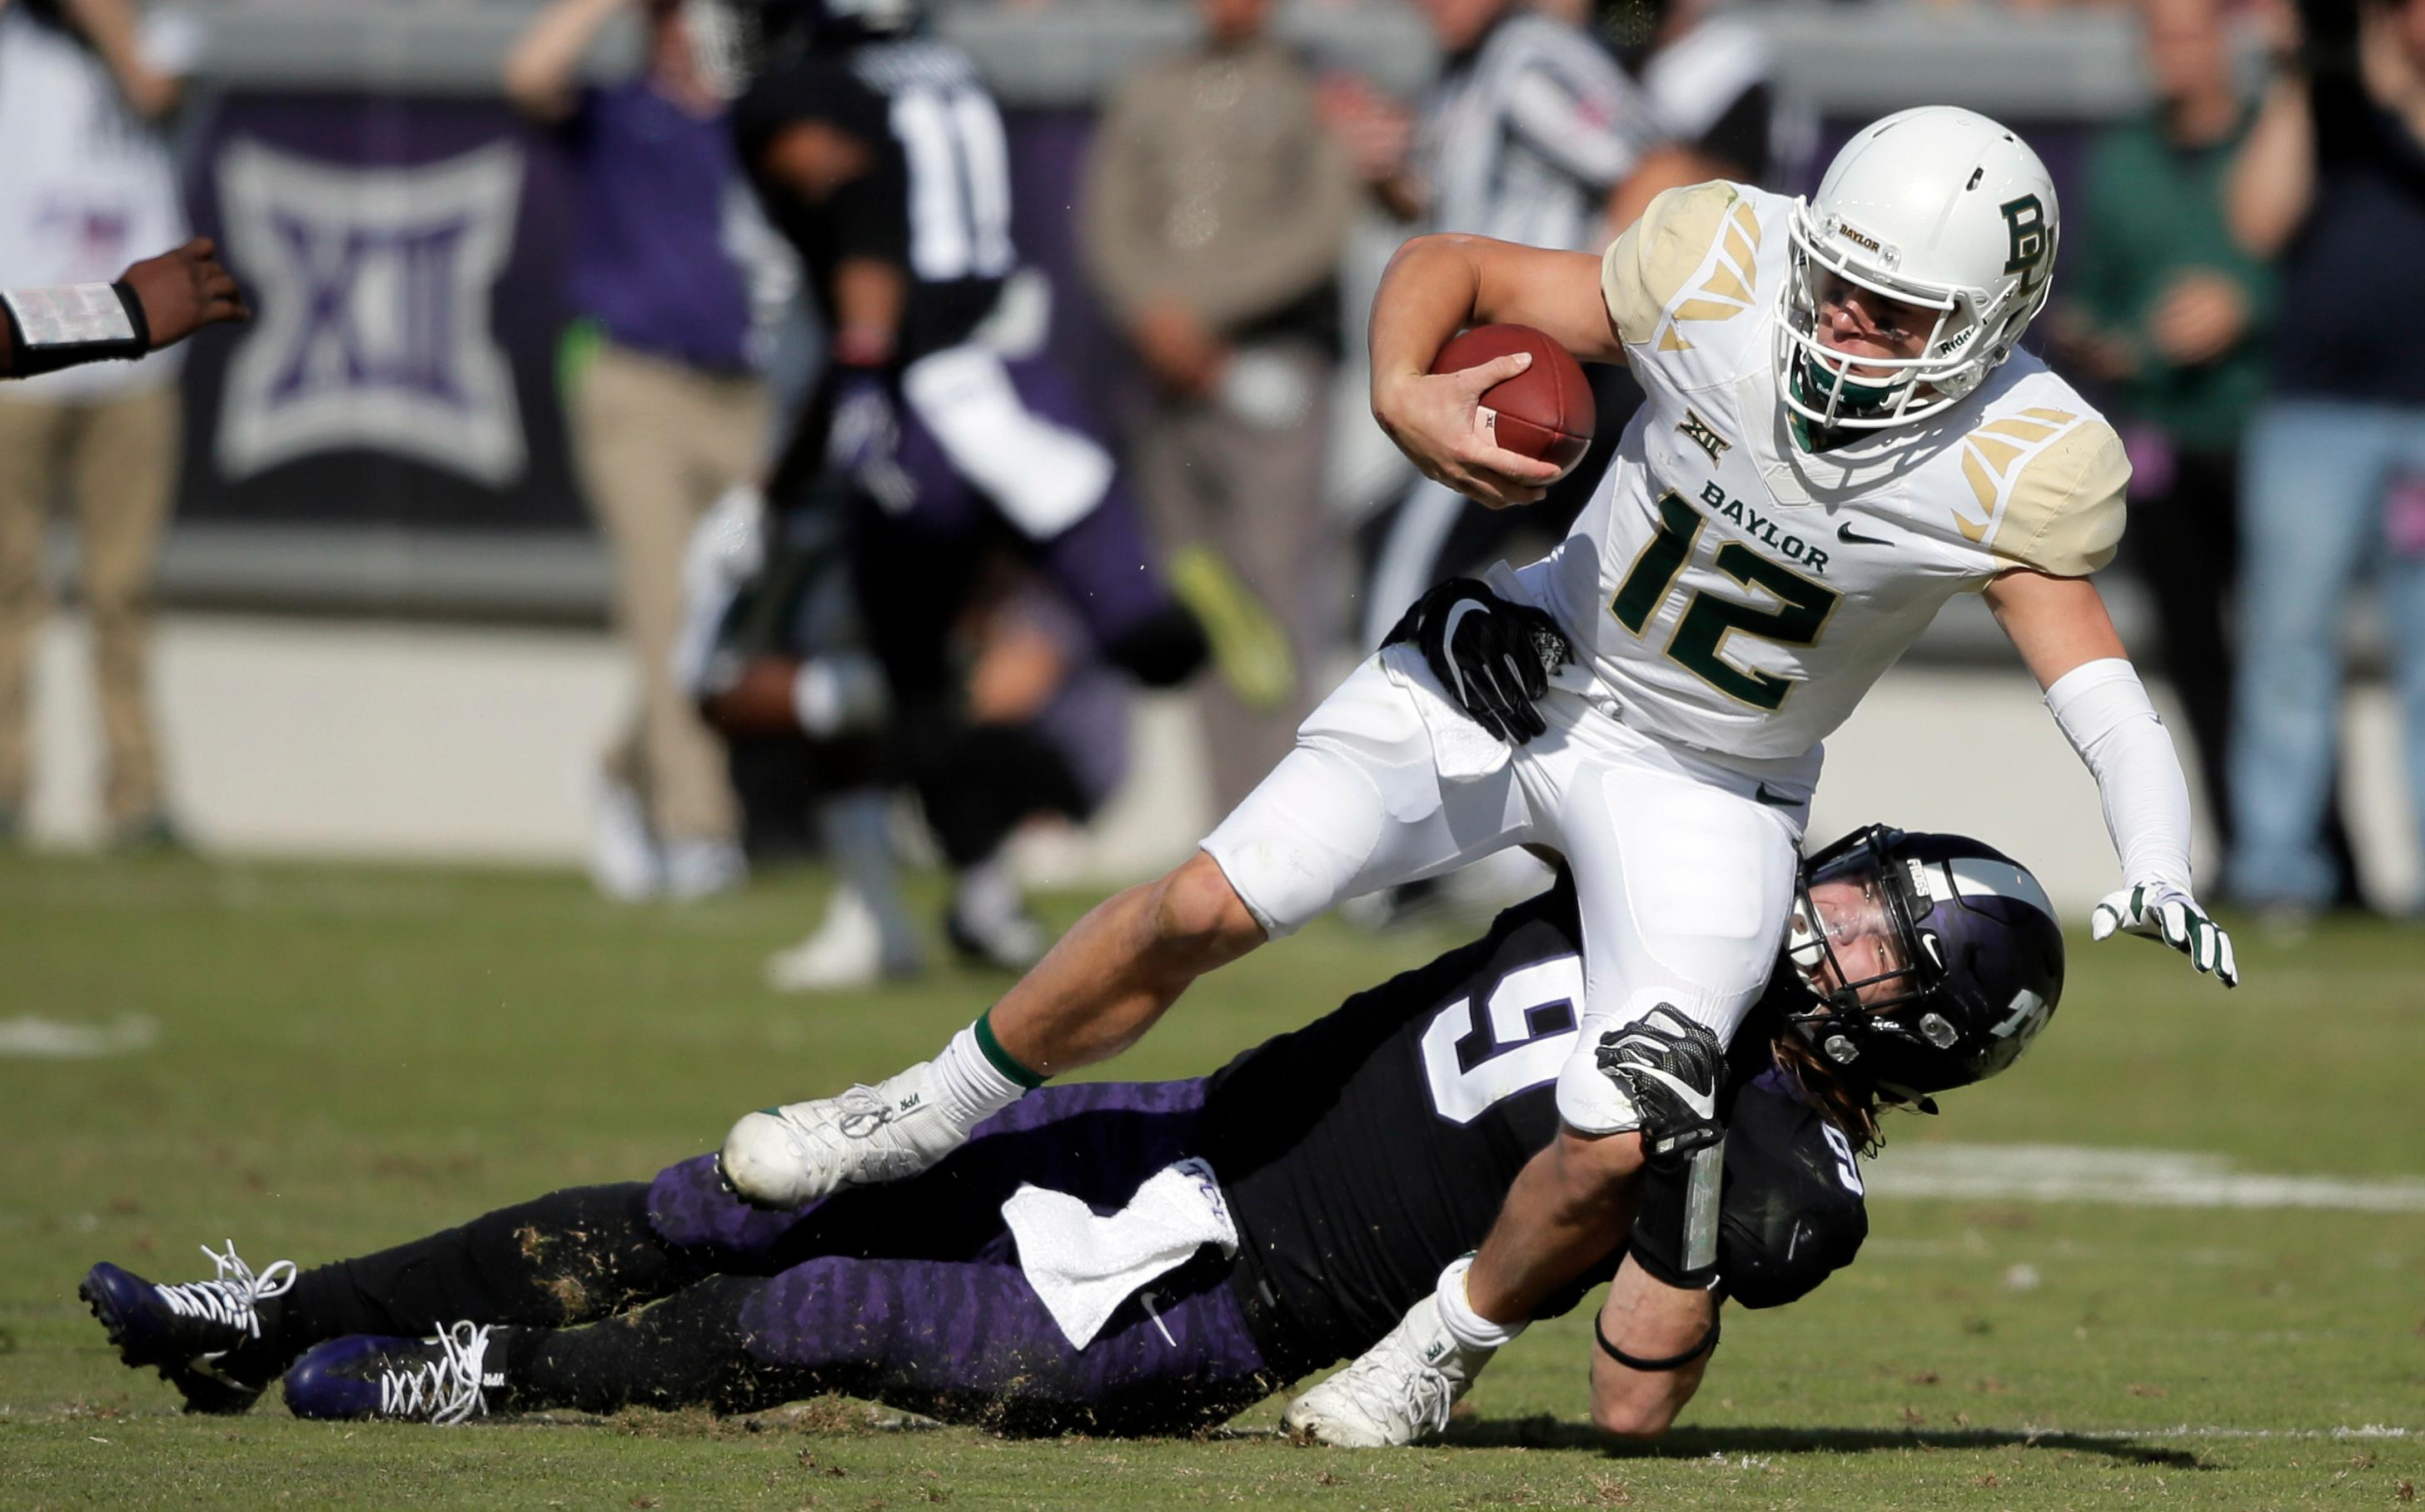 TCU defensive end Mat Boesen (9) tackles Baylor quarterback Charlie Brewer (12) during the first half of an NCAA college football game, Friday, Nov. 24, 2017, in Fort Worth, Texas. (AP Photo/Brandon Wade)